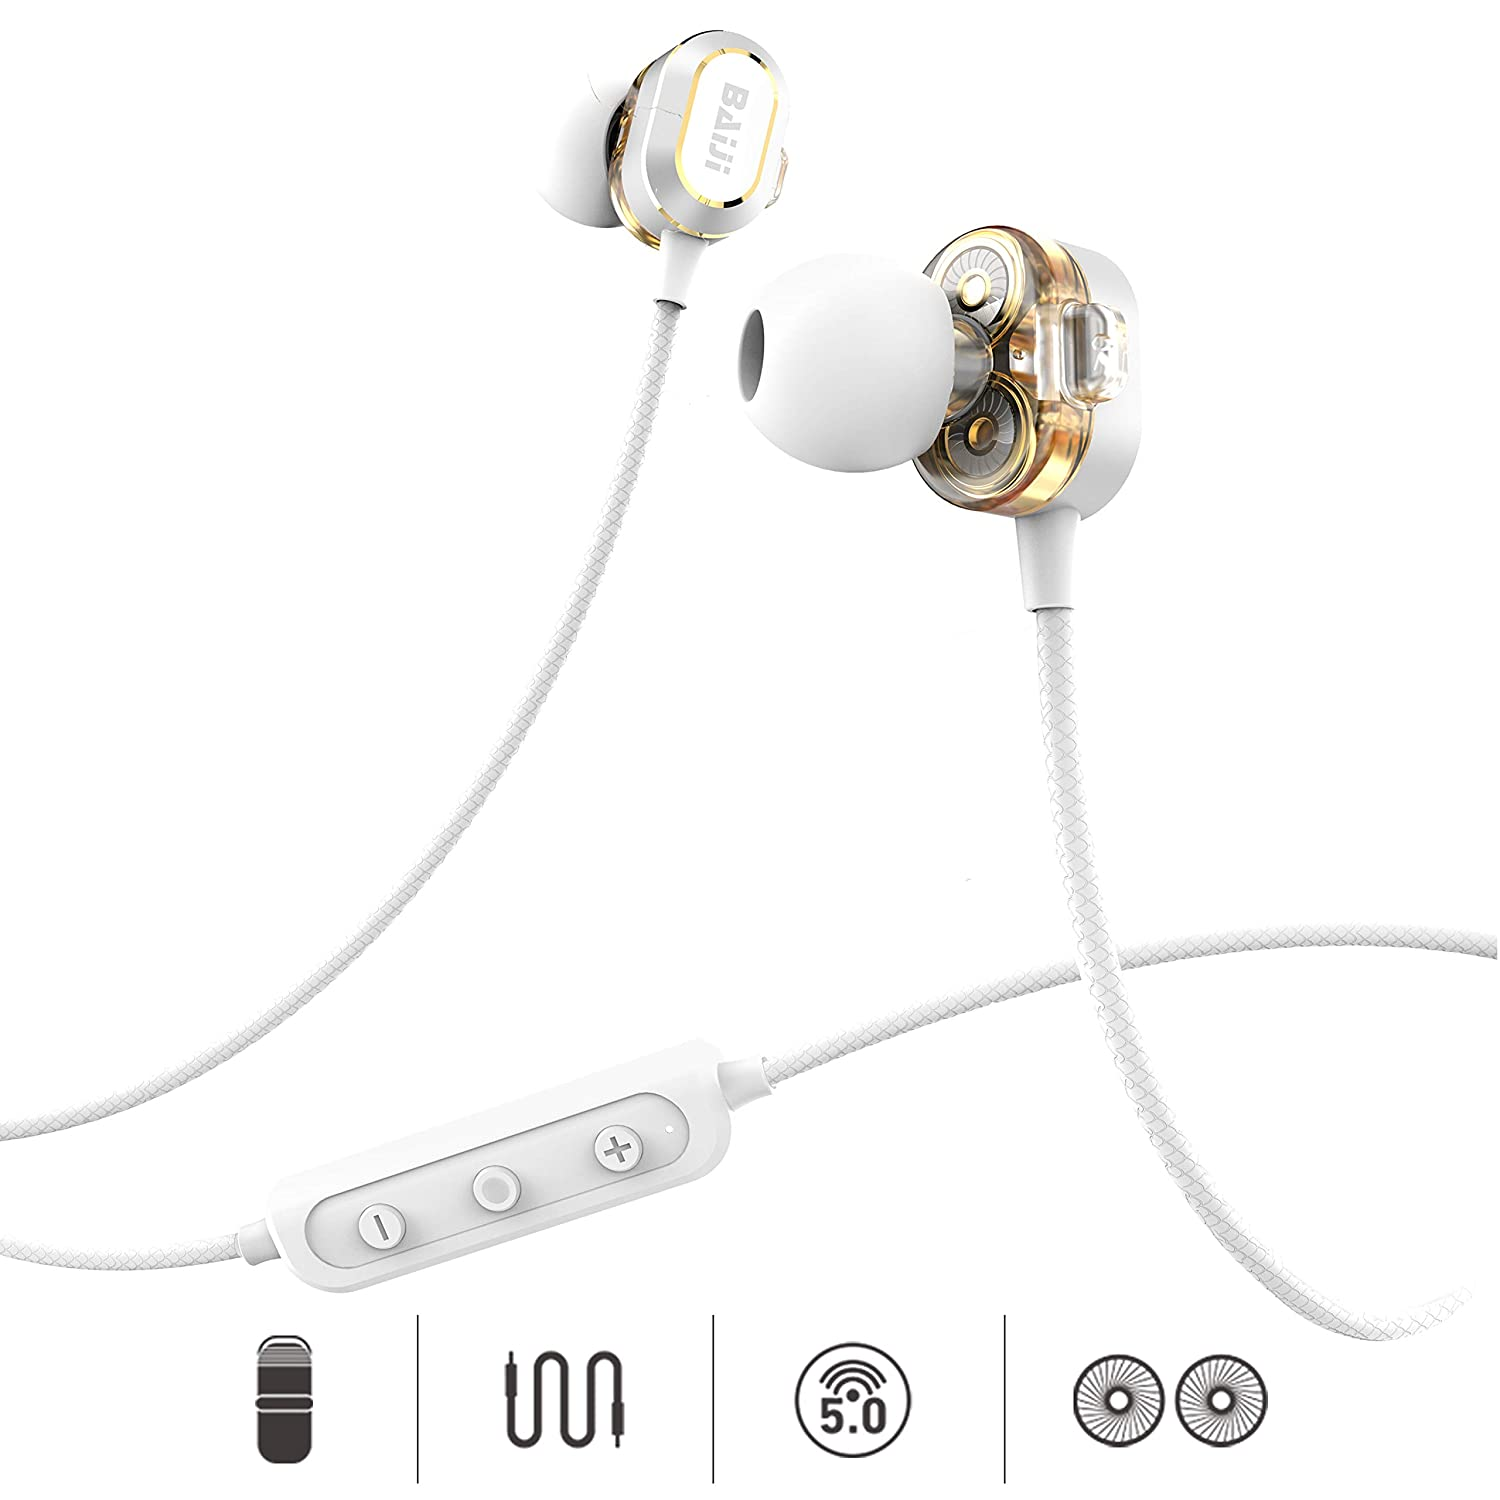 14 Hours Dual Dynamic Drives BAIJI Bluetooth Headphones Full Frequency HiFi Stereo Wireless Magnetic Earbuds Sport with Fixed Clip & Non-Slip Cable with Clear Mic, Comfortable & Fast Pairing (Silver)